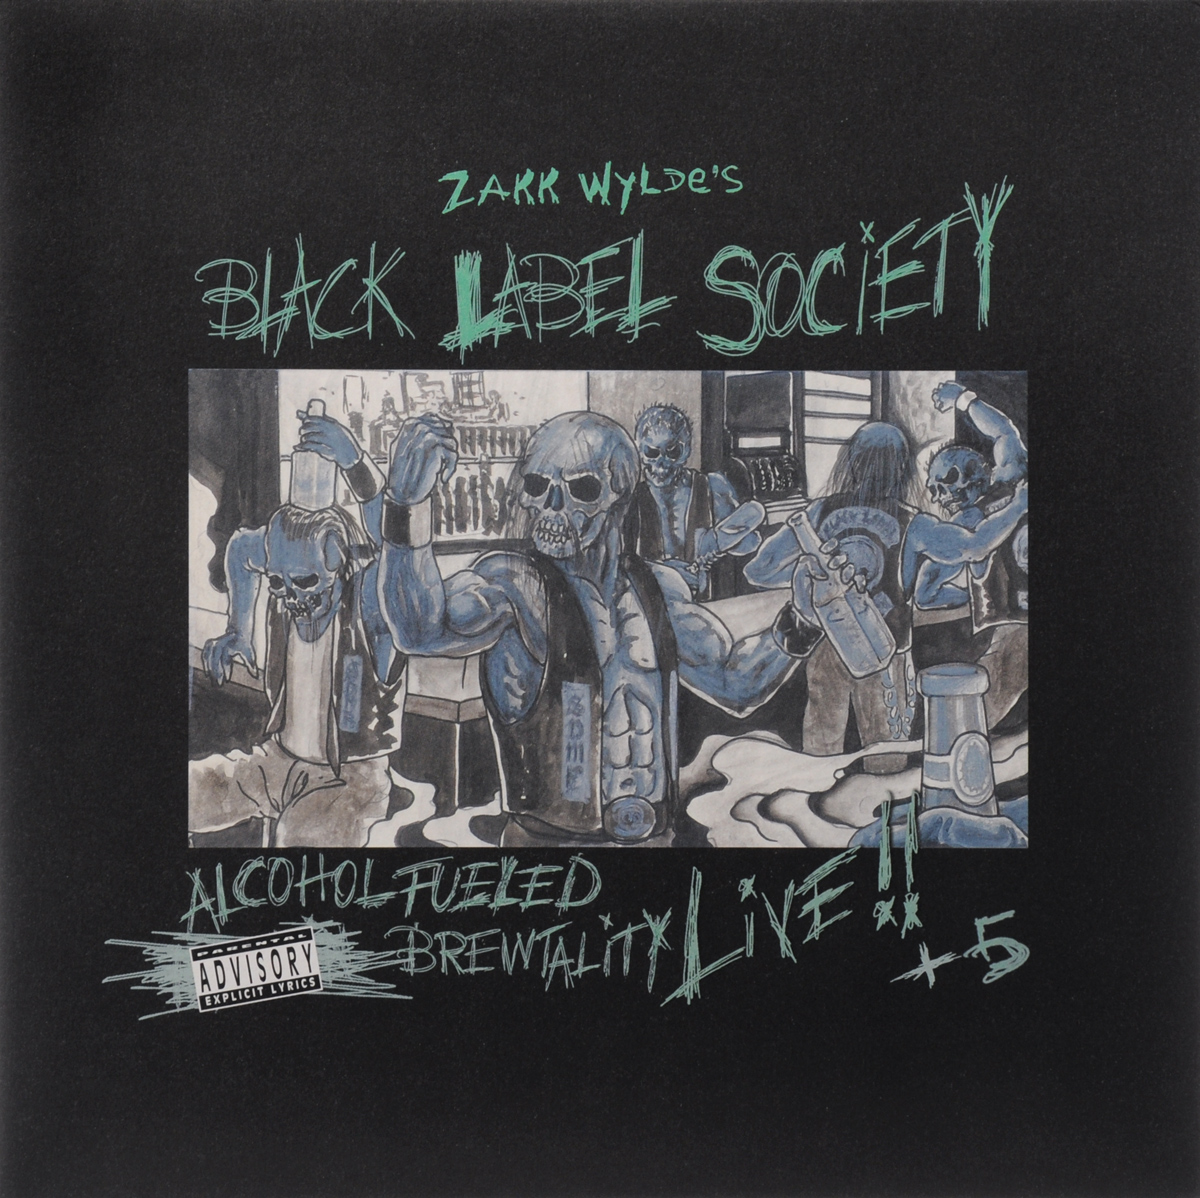 Black Label Society Black Label Society. Alcohol Fueled Brewtality  Live!! +5 (2 LP) heist society